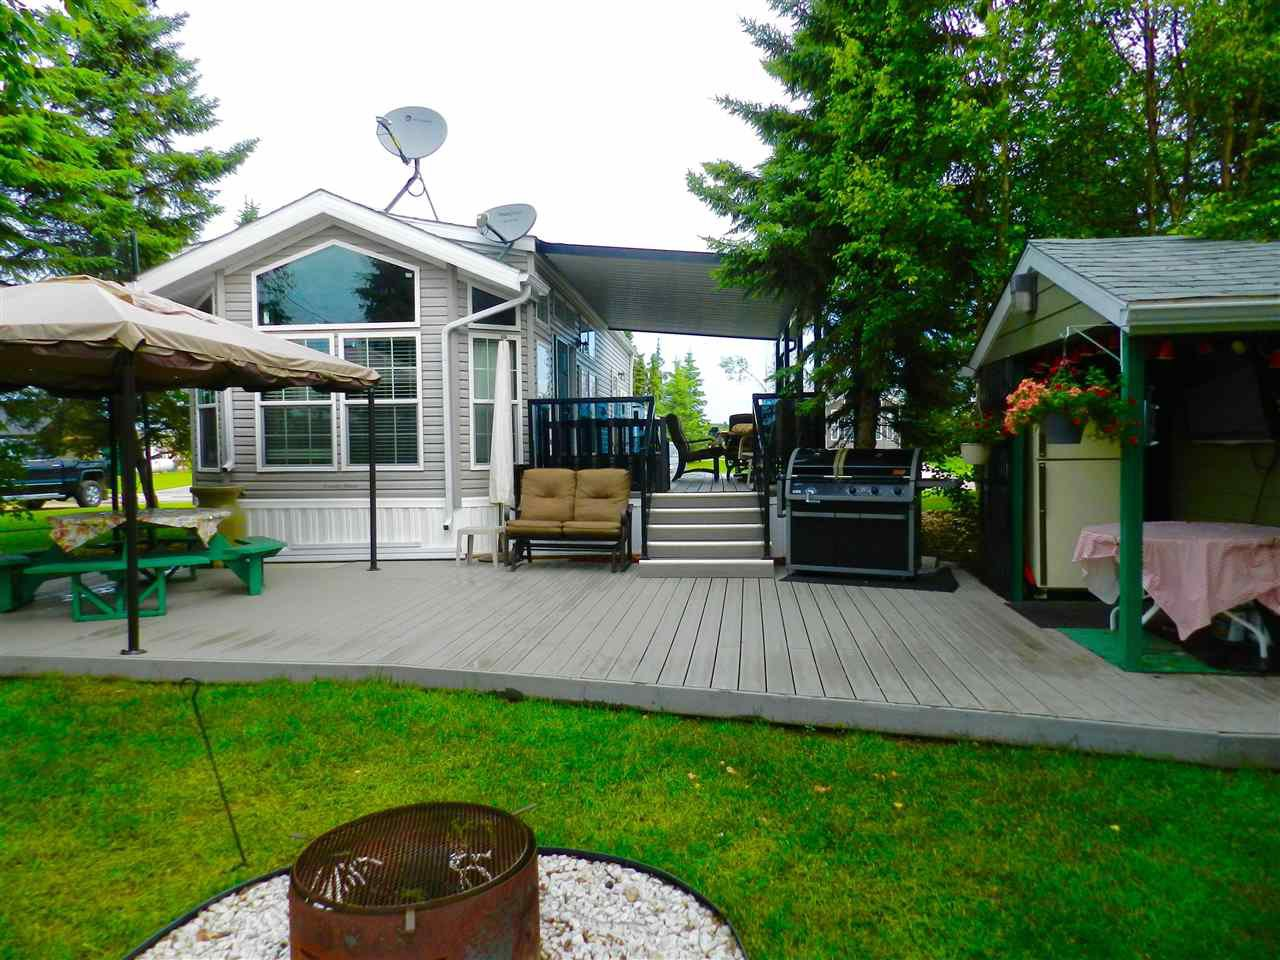 Main Photo: 109 53126 RGE RD 70: Rural Parkland County Manufactured Home for sale : MLS®# E4204174